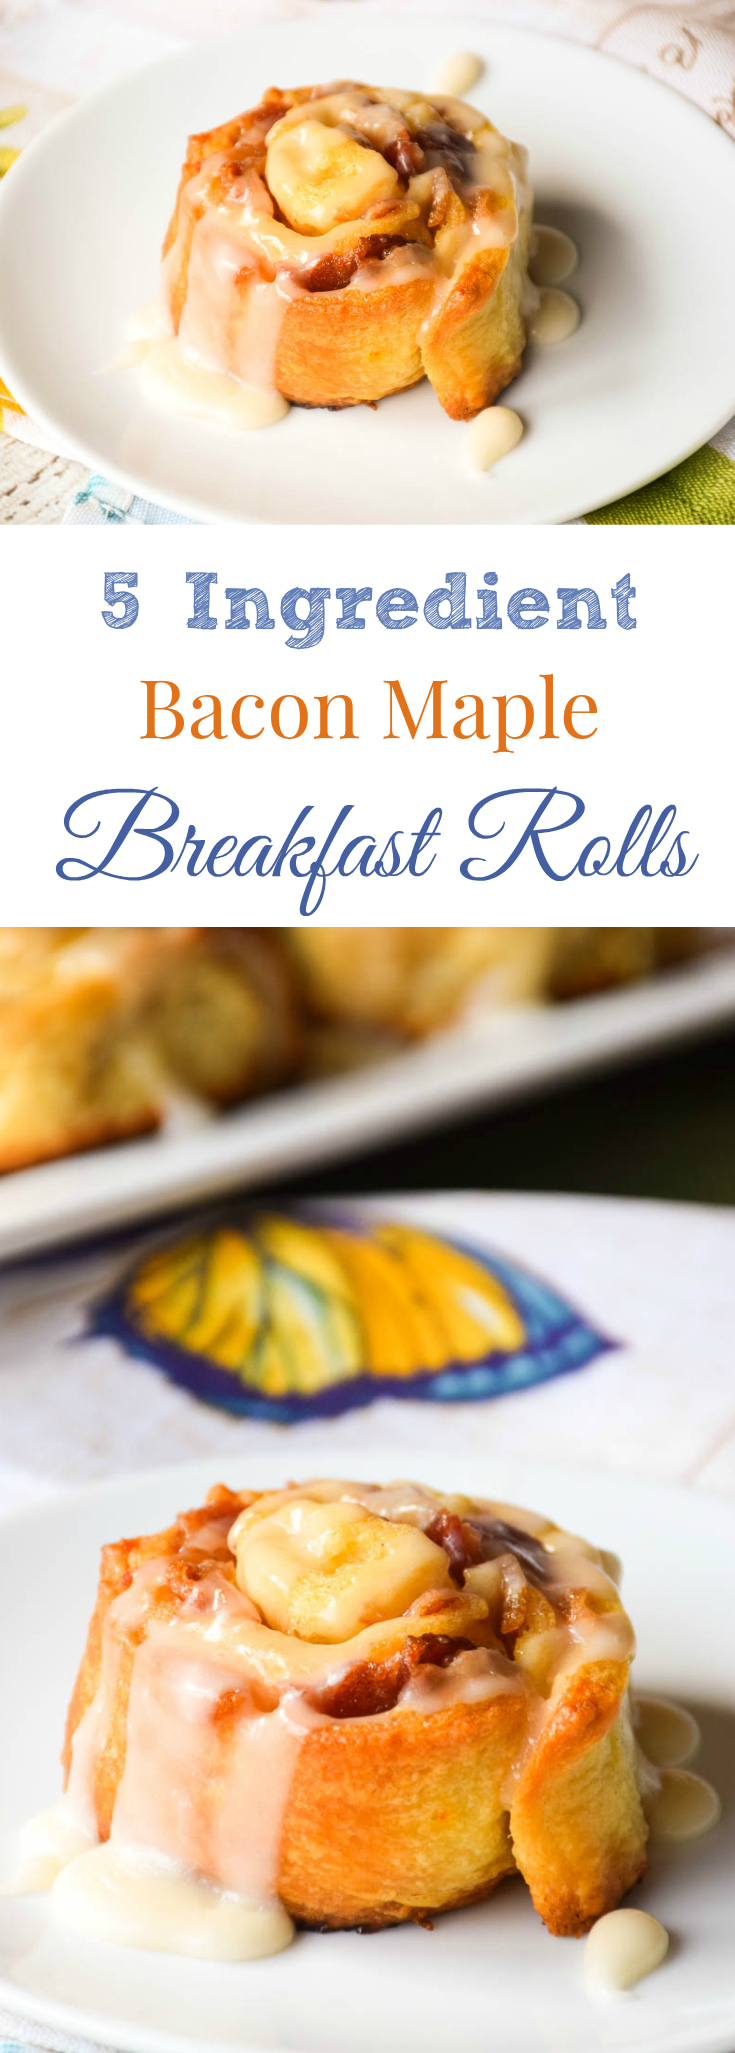 Bacon Maple Breakfast Rolls